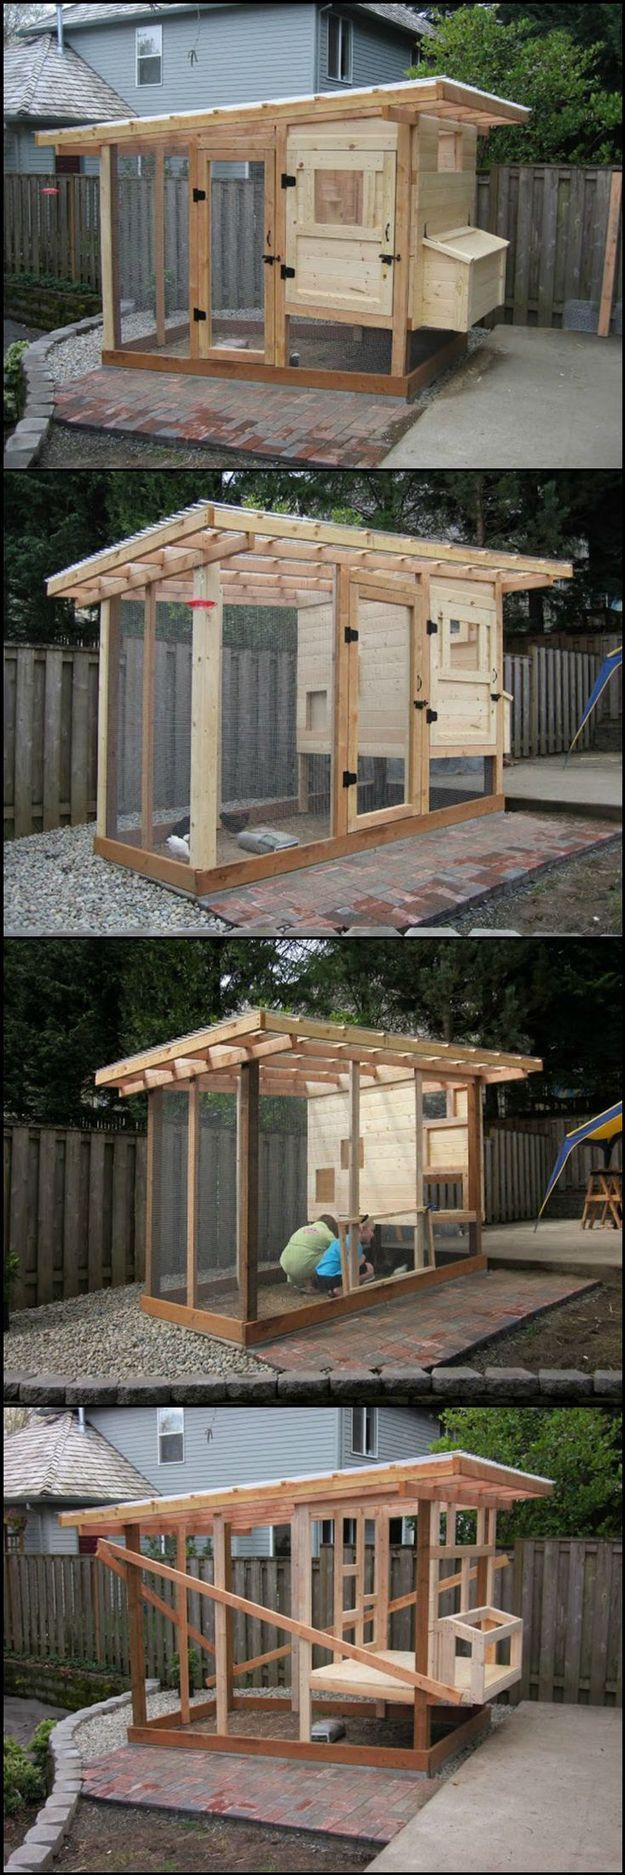 37 chicken coop designs and ideas 2nd edition chicken coop